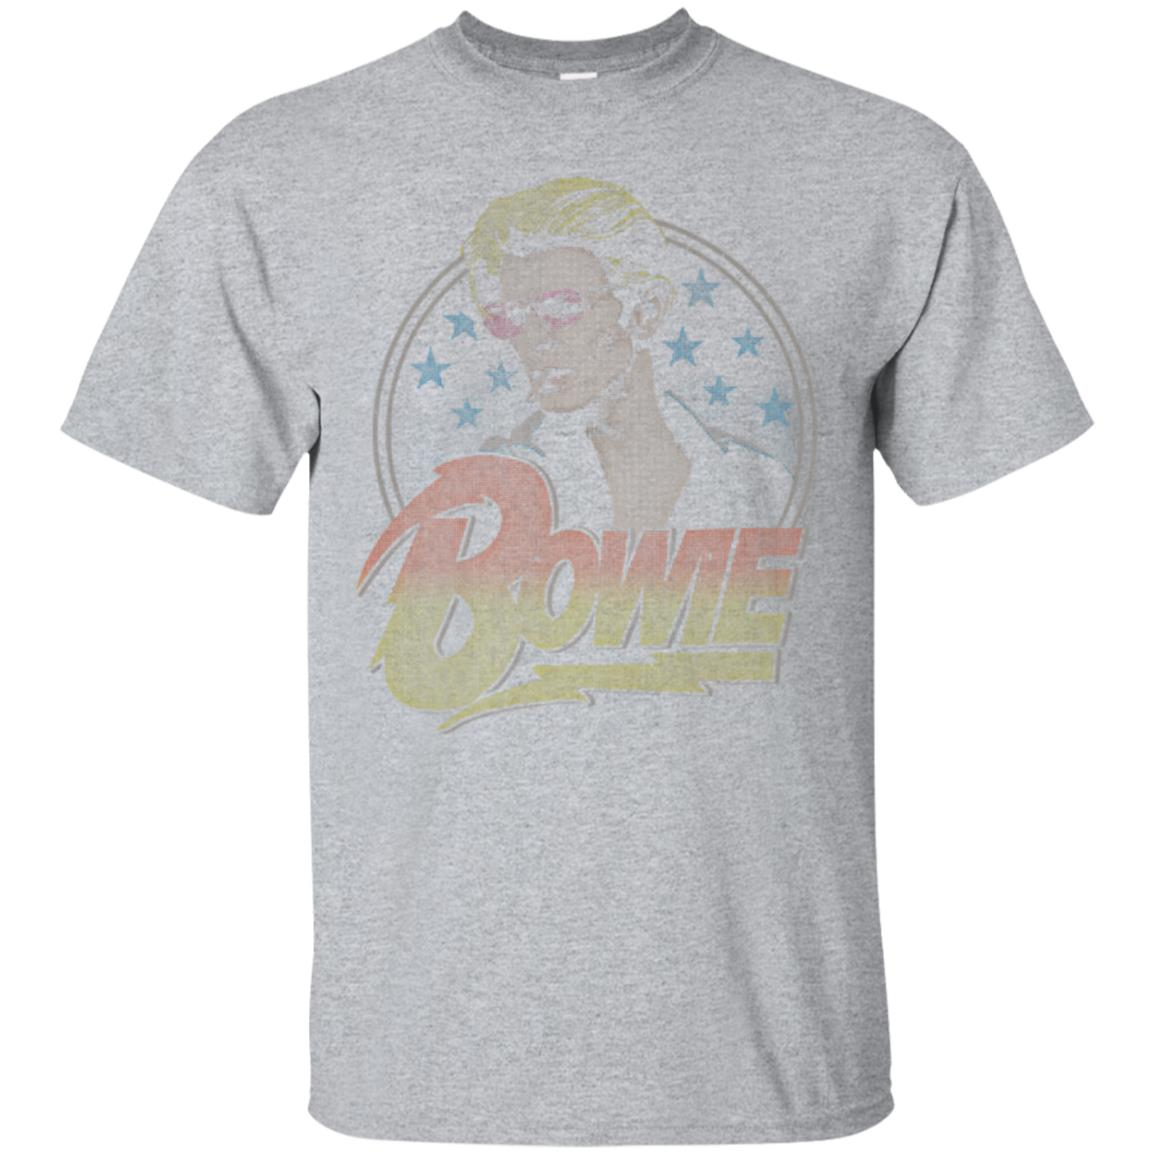 David Bowie - Diamond Dogs T-Shirt 99promocode